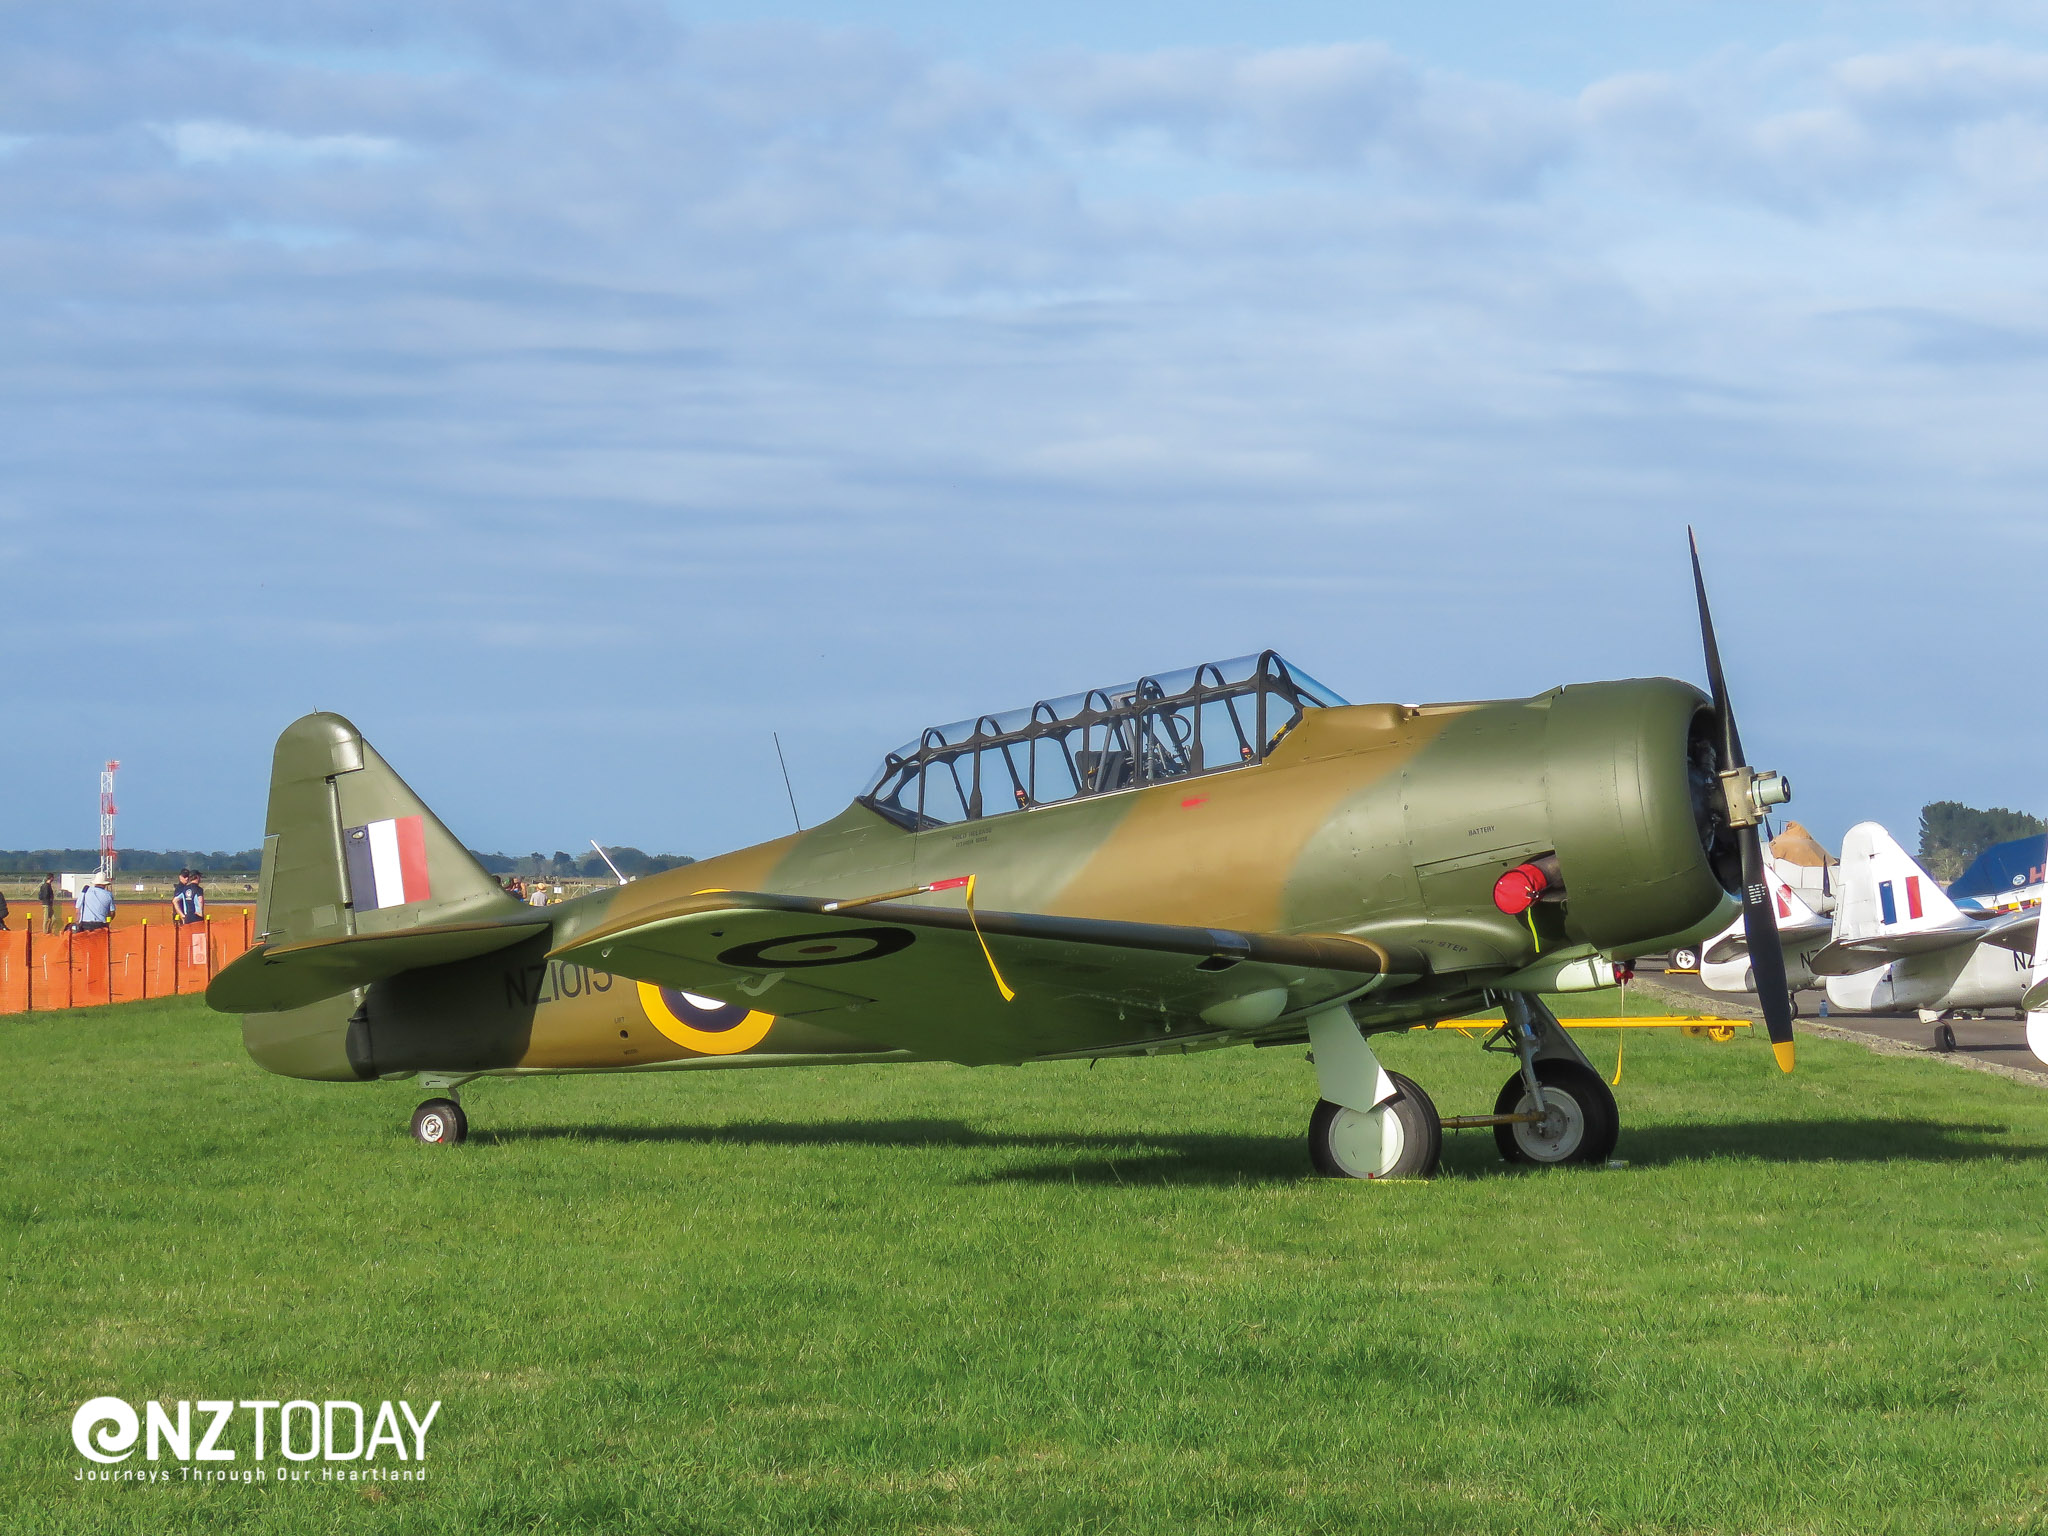 The former RNZAF training workhorse – the Harvard